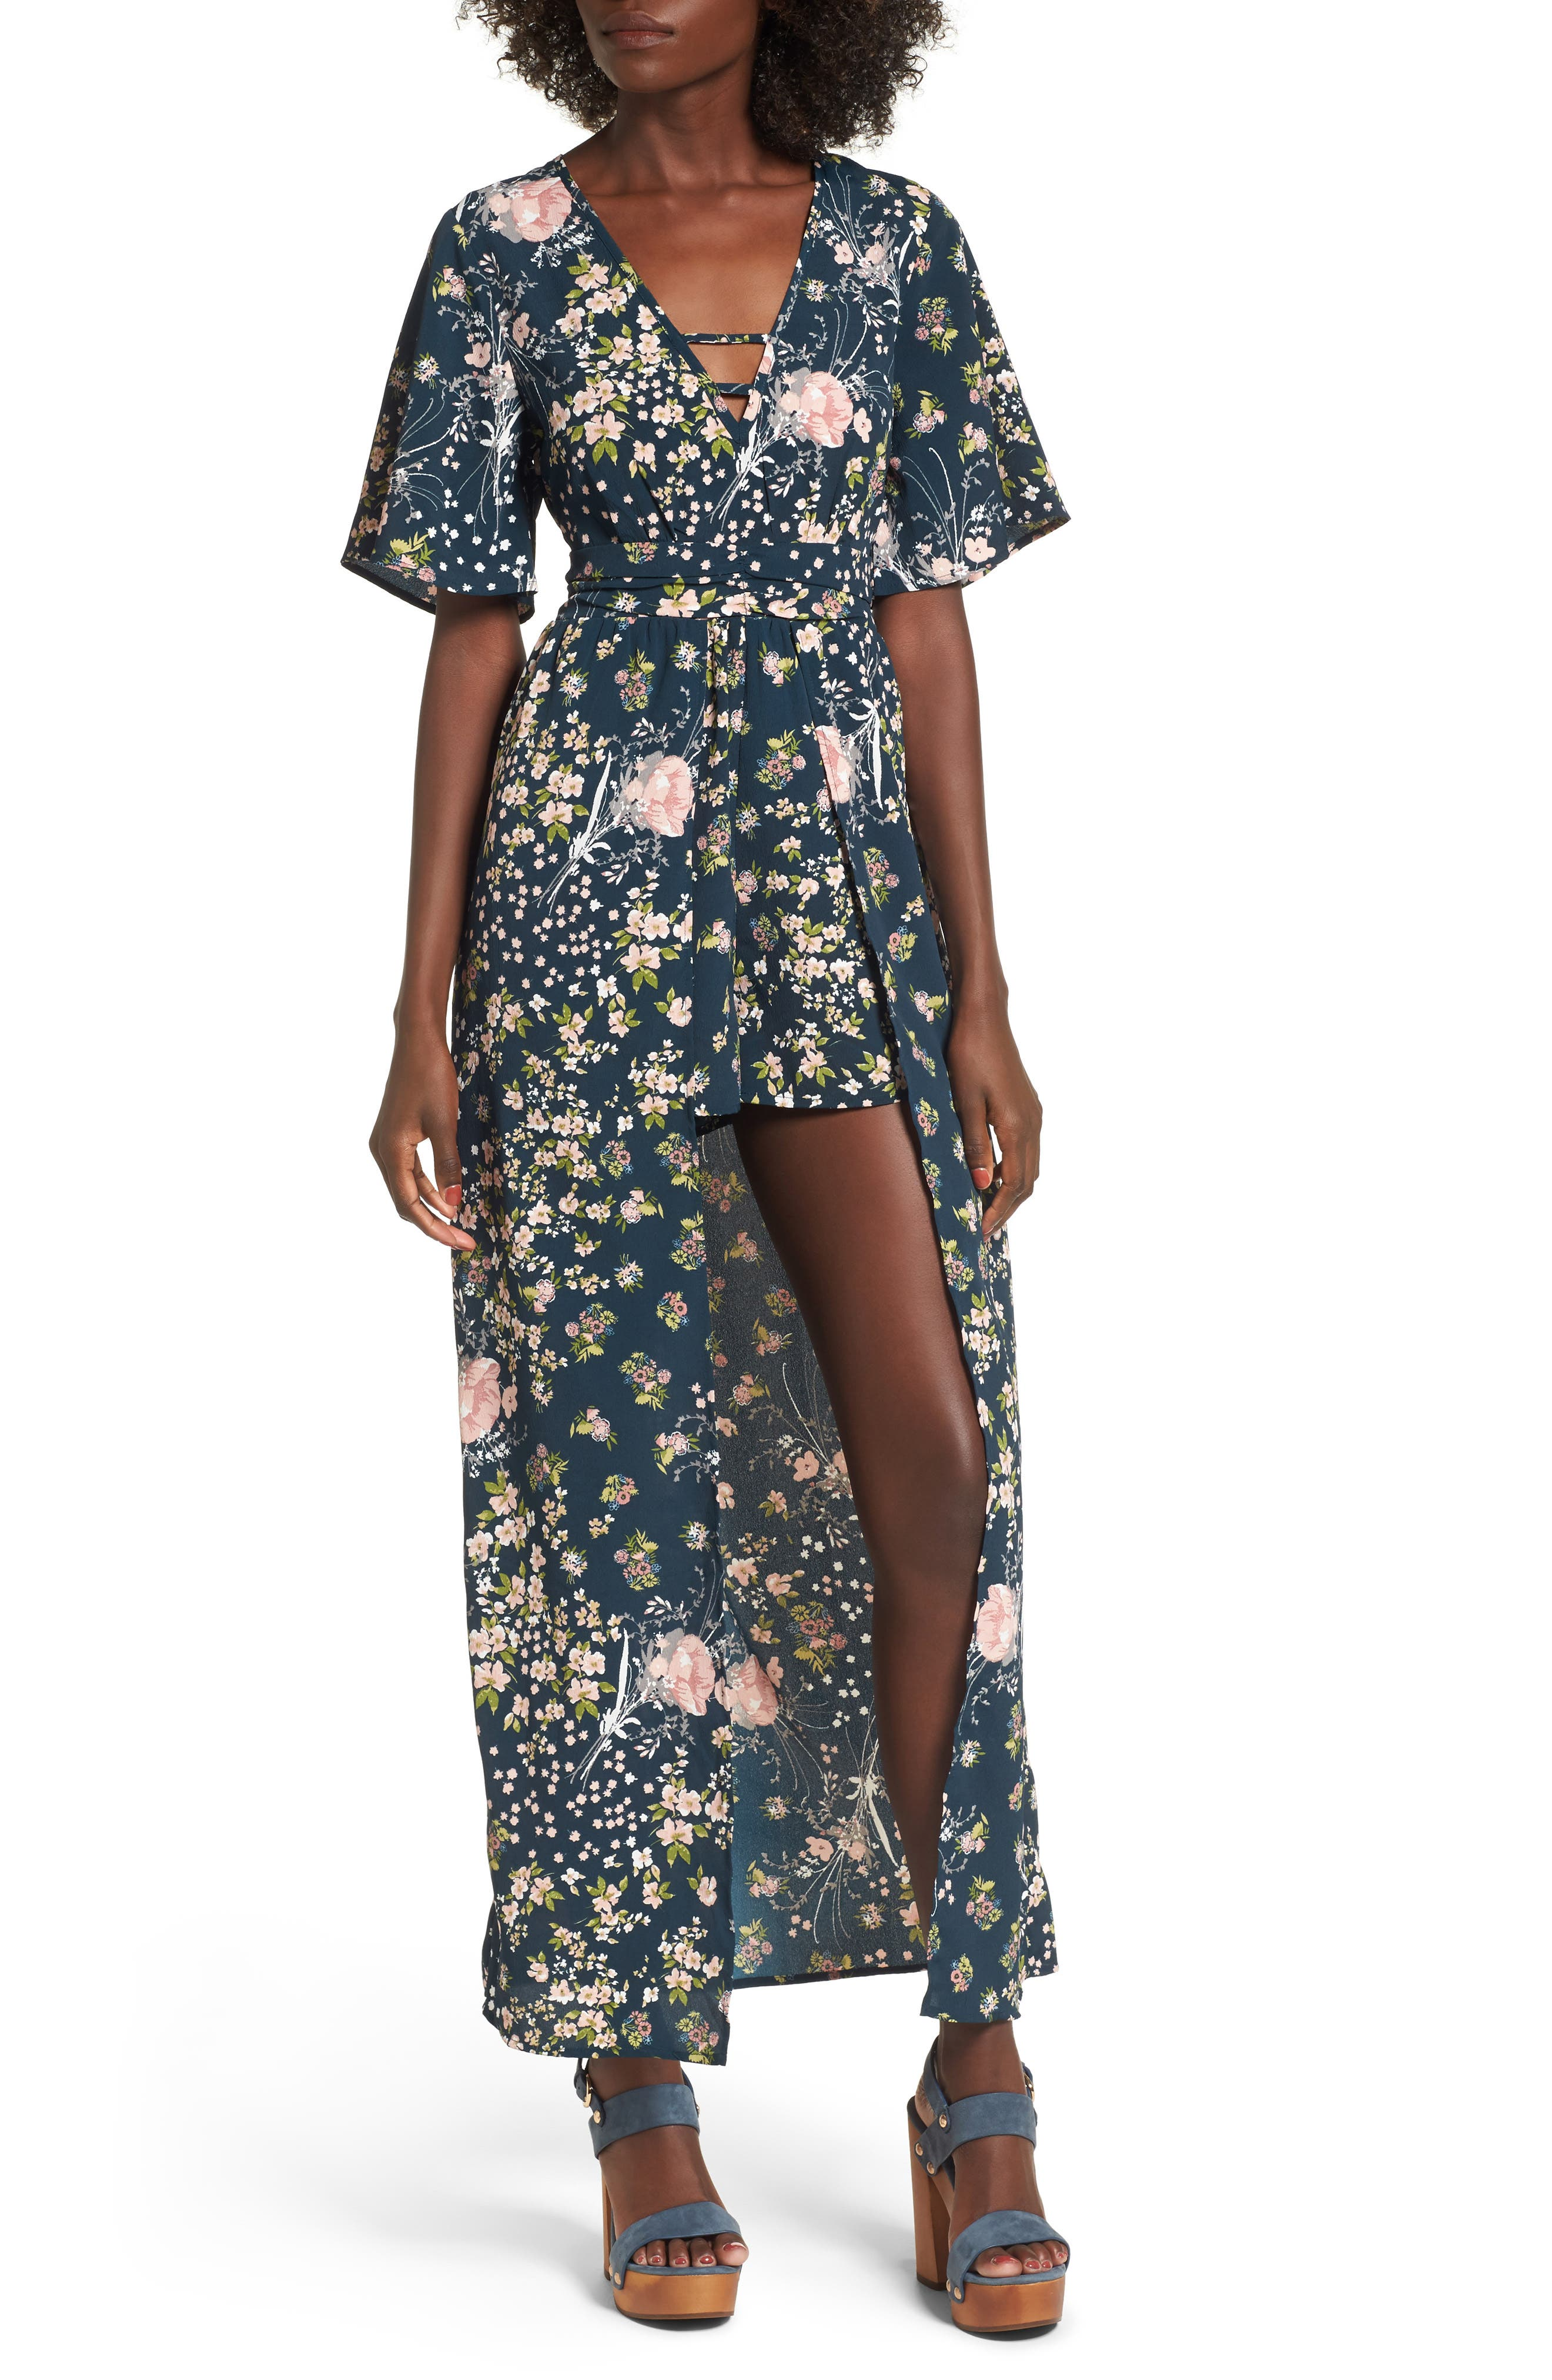 Band of Gypsies Moody Floral Print Maxi Romper